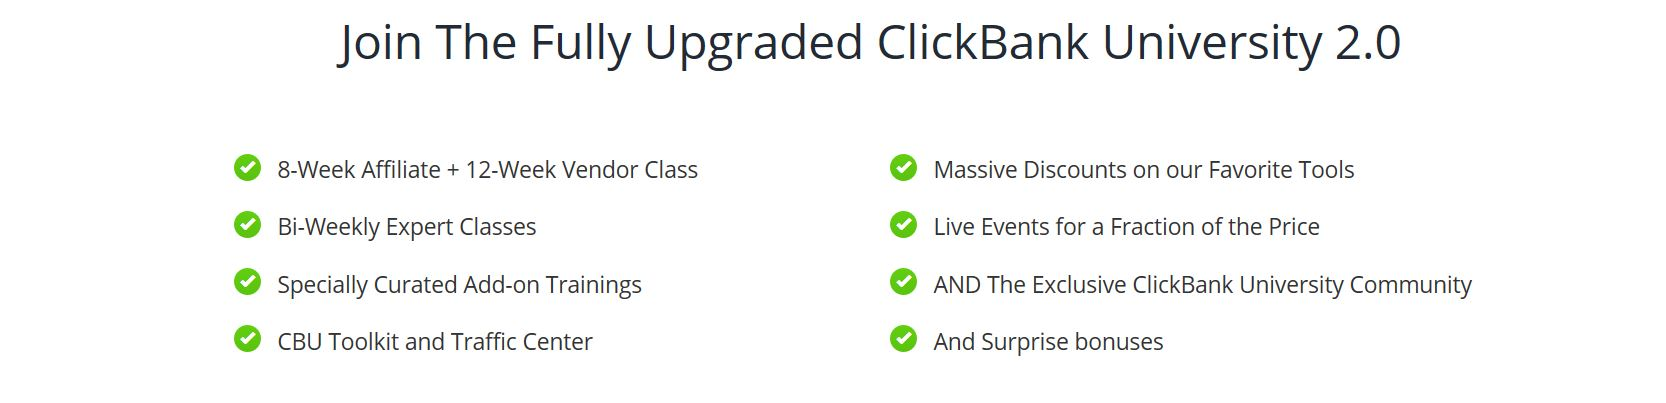 ClickBank University Upgrade.